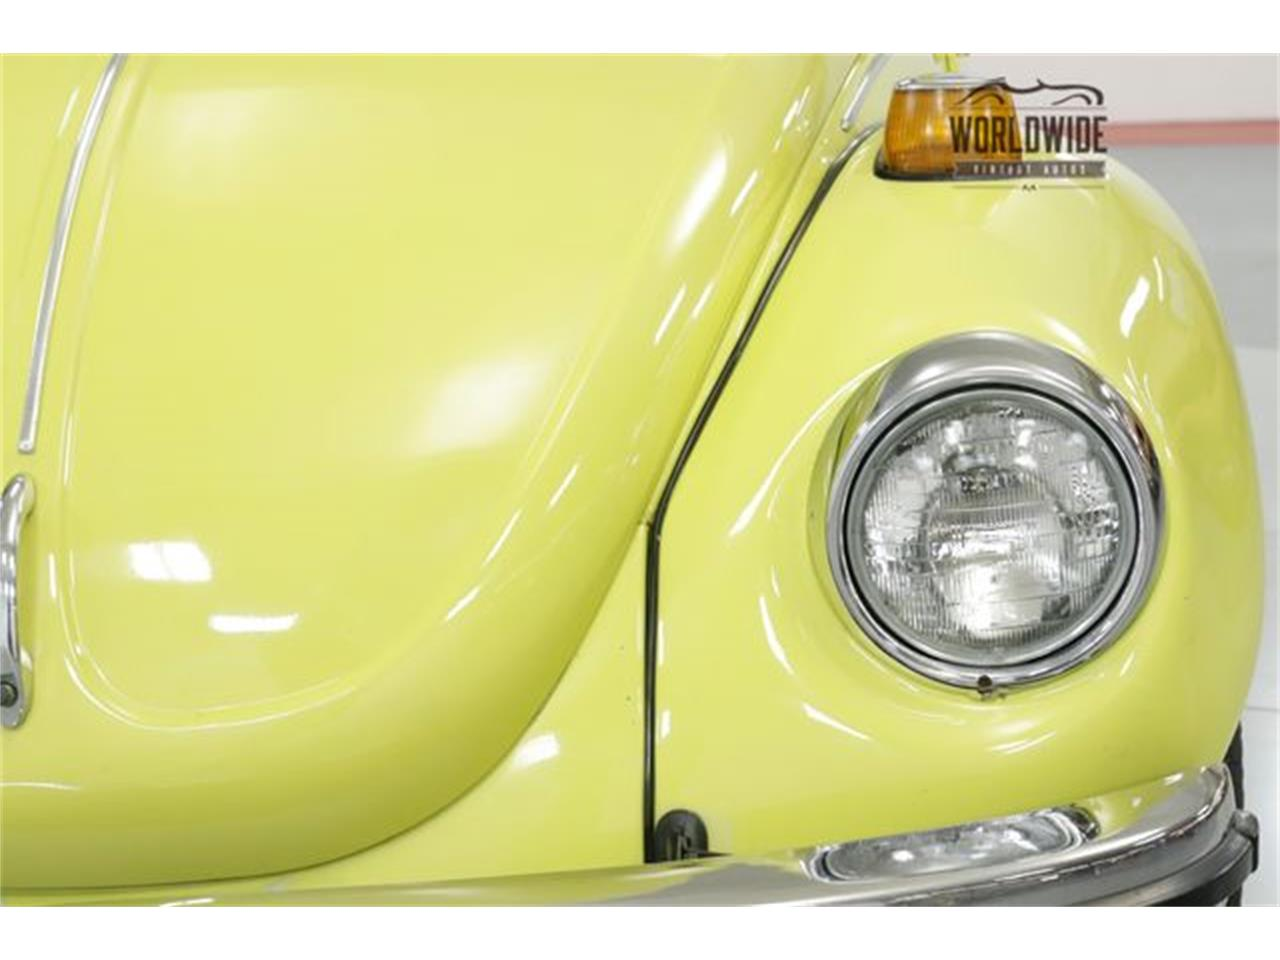 Large Picture of Classic '73 Volkswagen Beetle located in Colorado - $9,900.00 - PGMT